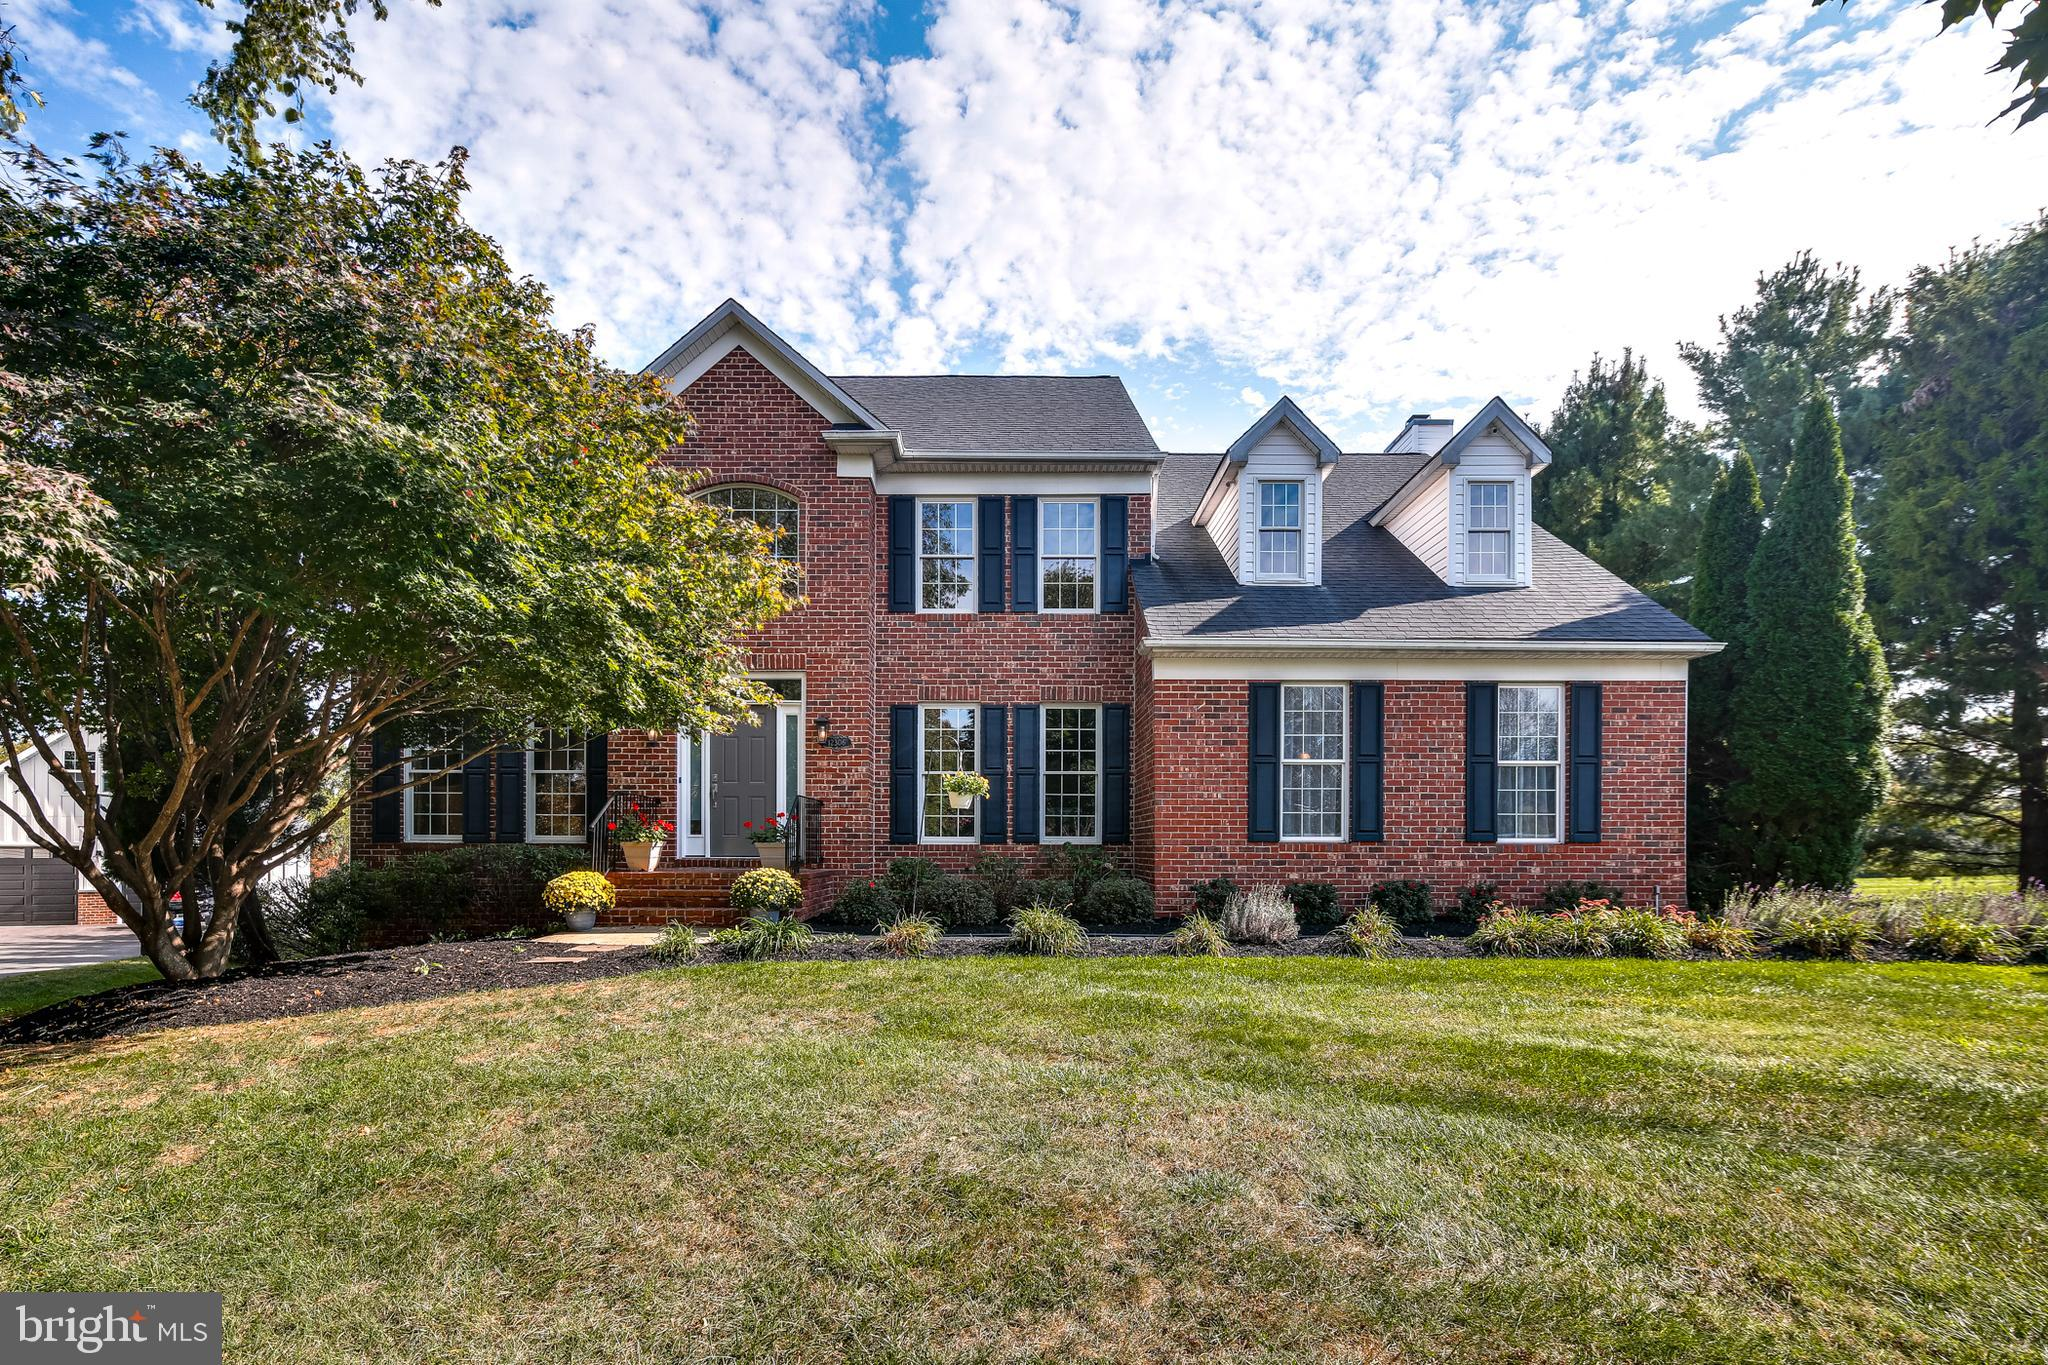 You'll love living in Fulton Manor! This gorgeous brick front home sits on over one acre in a great